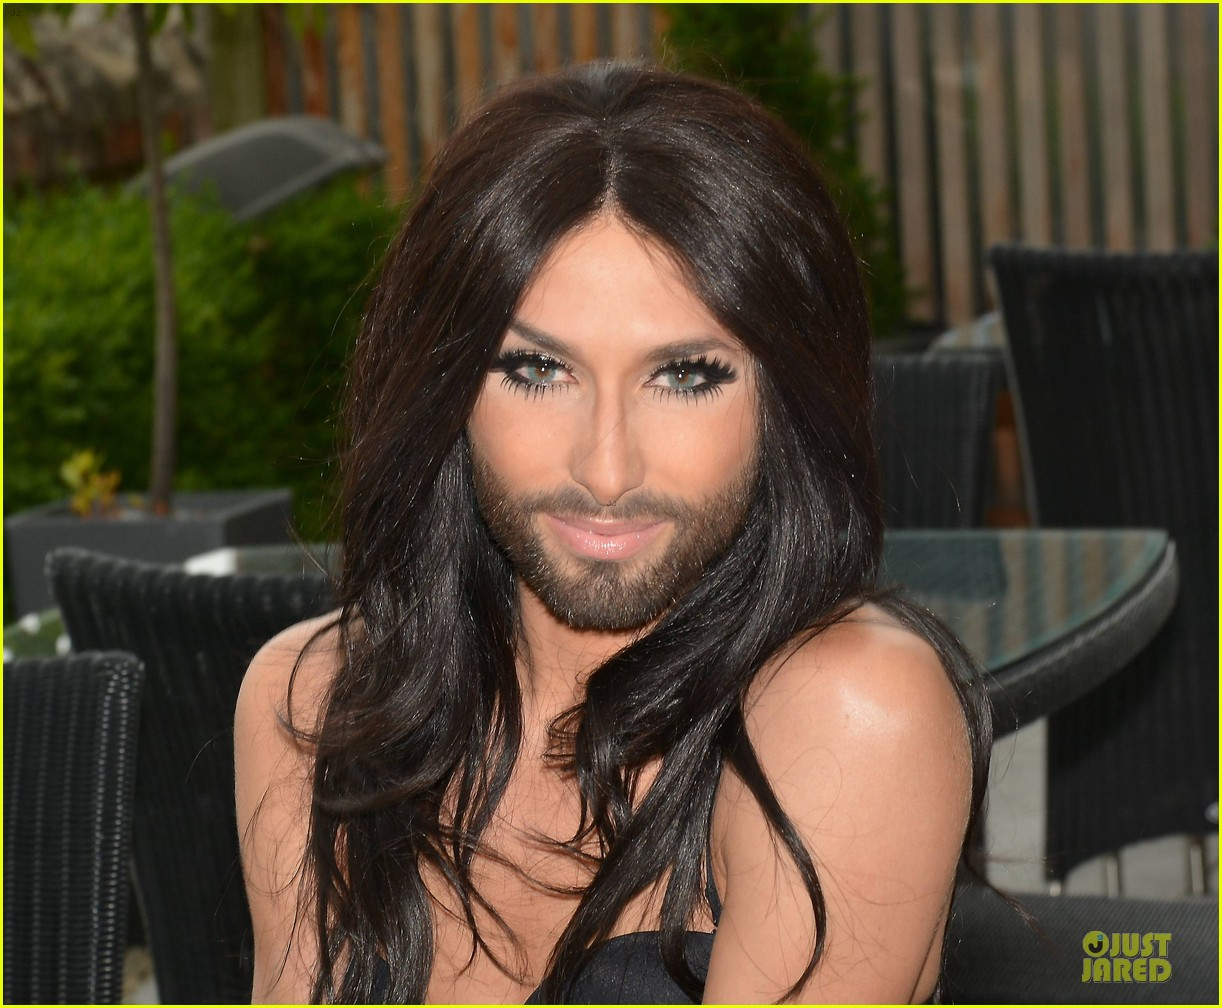 conchita wurst human right to love whoever you want 02